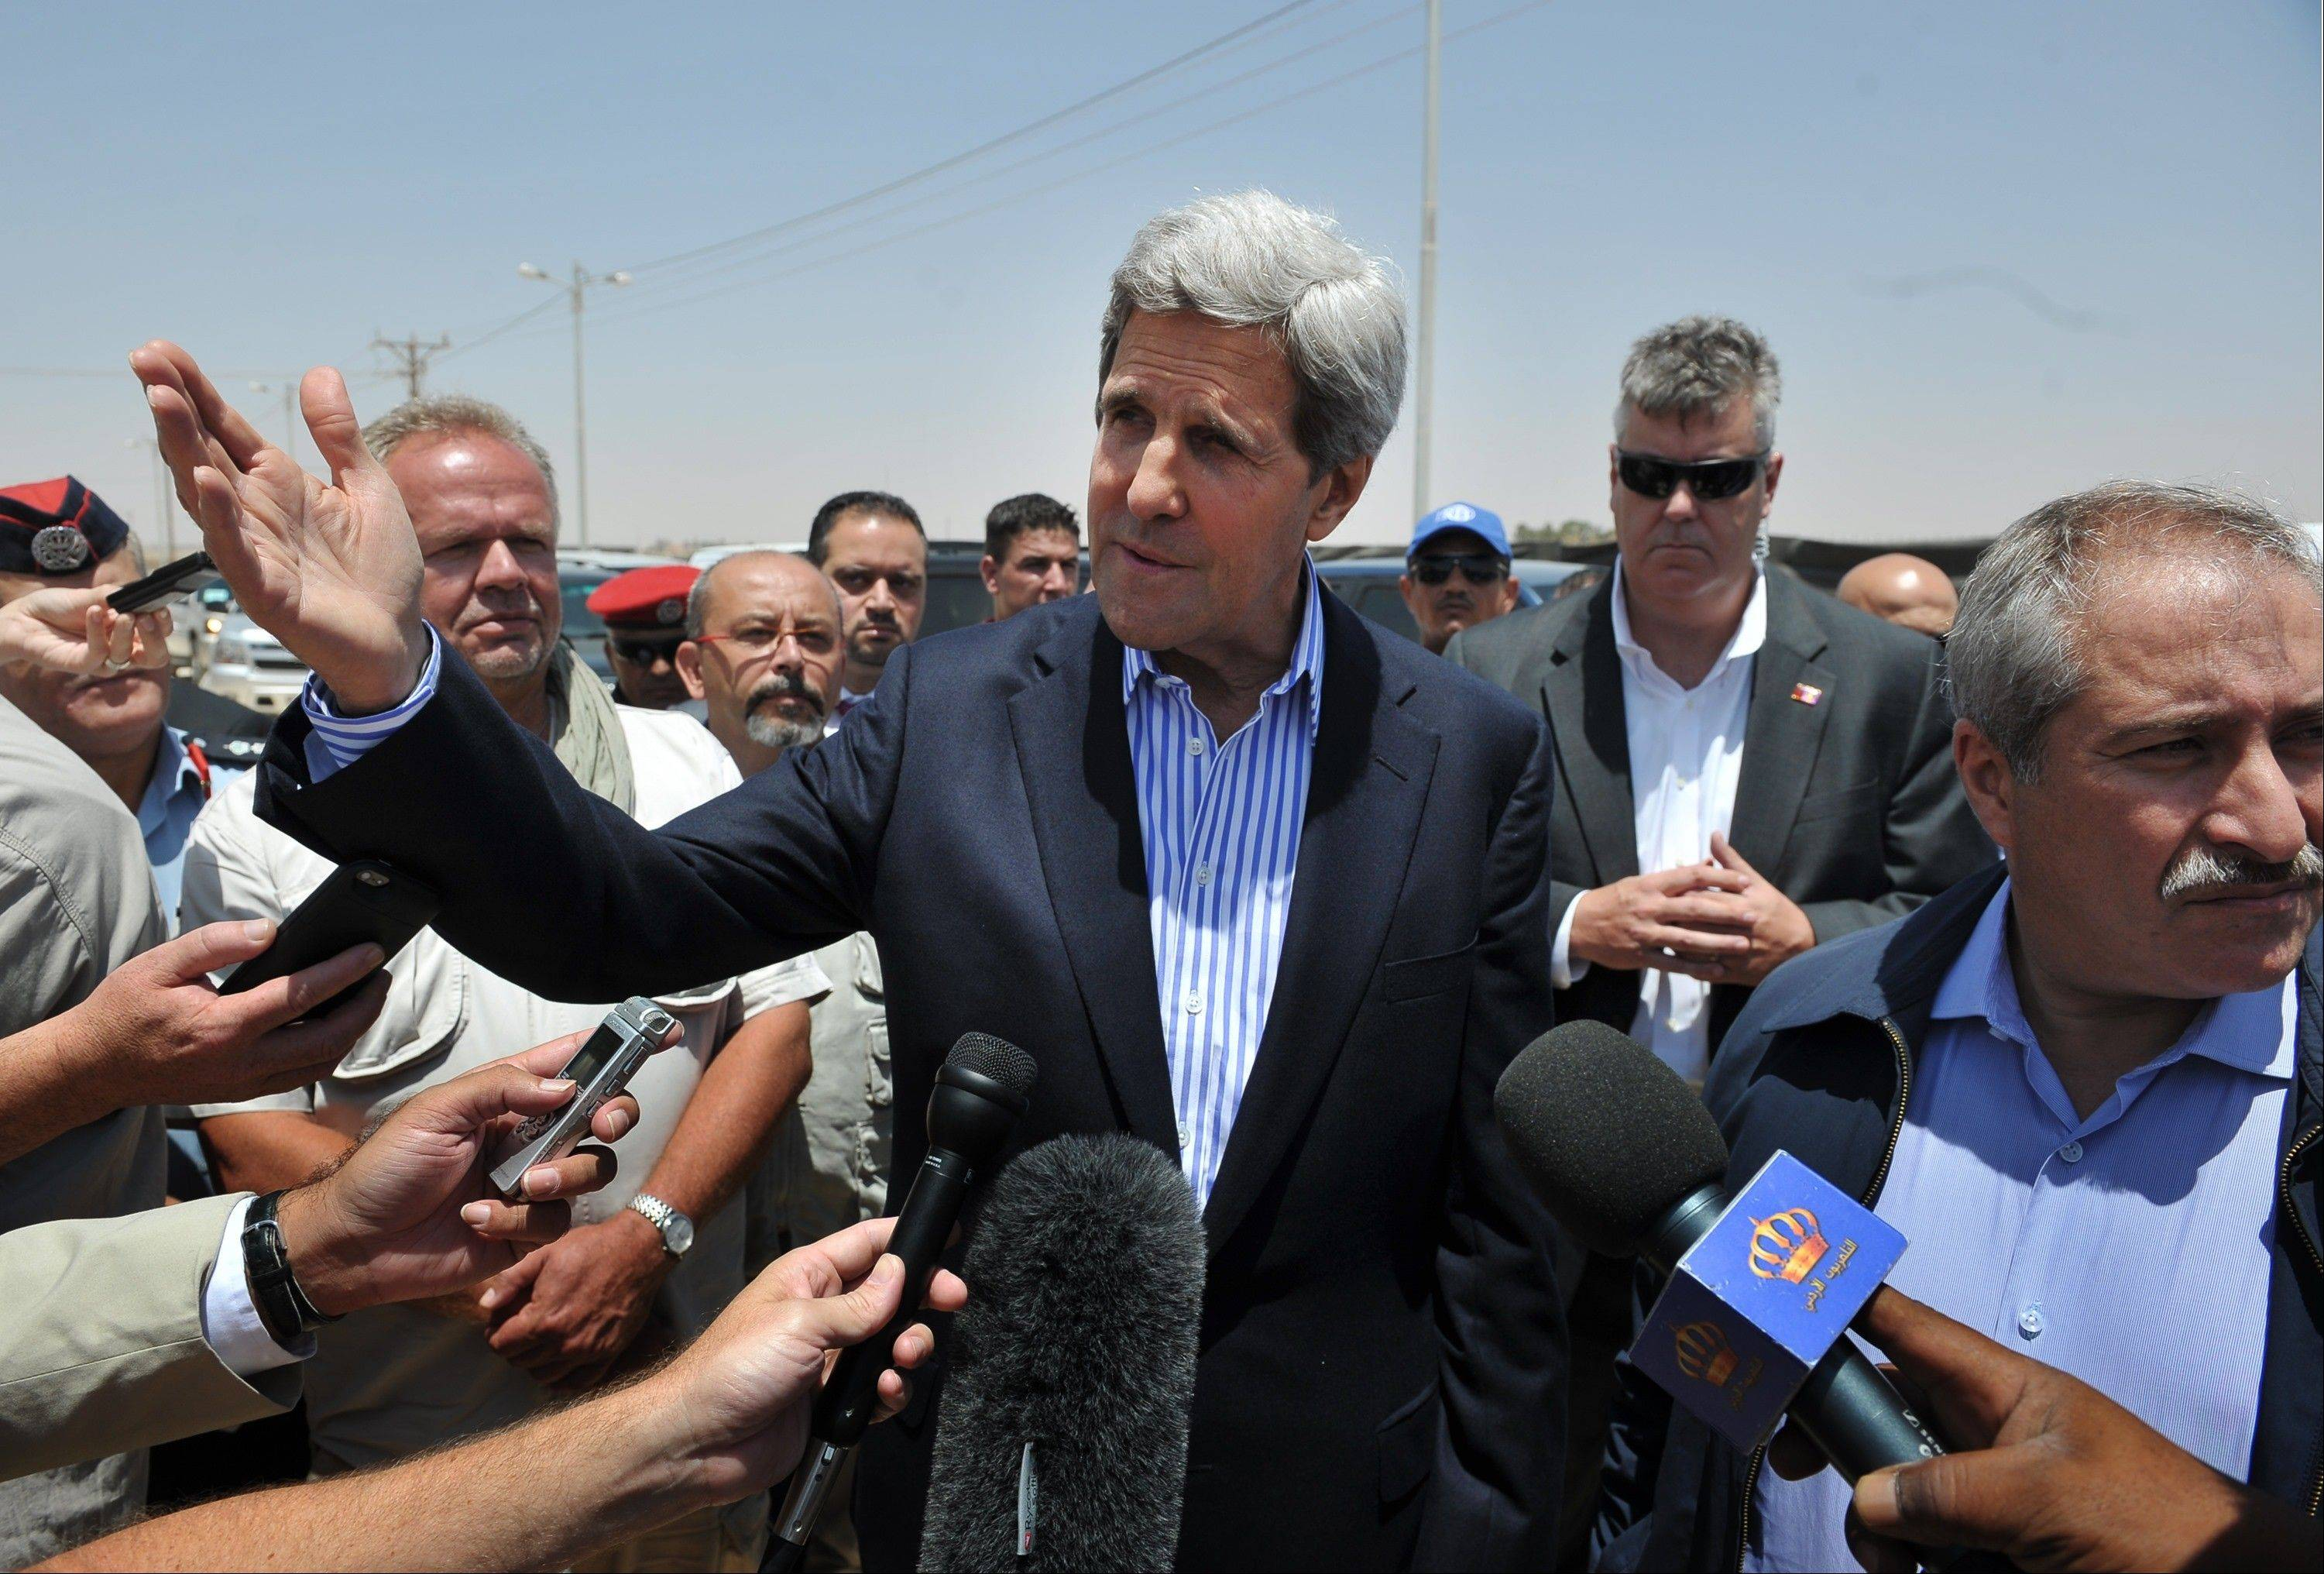 U.S. Secretary of State John Kerry visits the Zaatari refugee camp in Mafraq, Jordan, Thursday, July 18, 2013. Angry Syrian refugees urged Kerry on Thursday to do more to help opponents of President Bashar Assad's government, venting frustration at perceived inaction on their behalf.